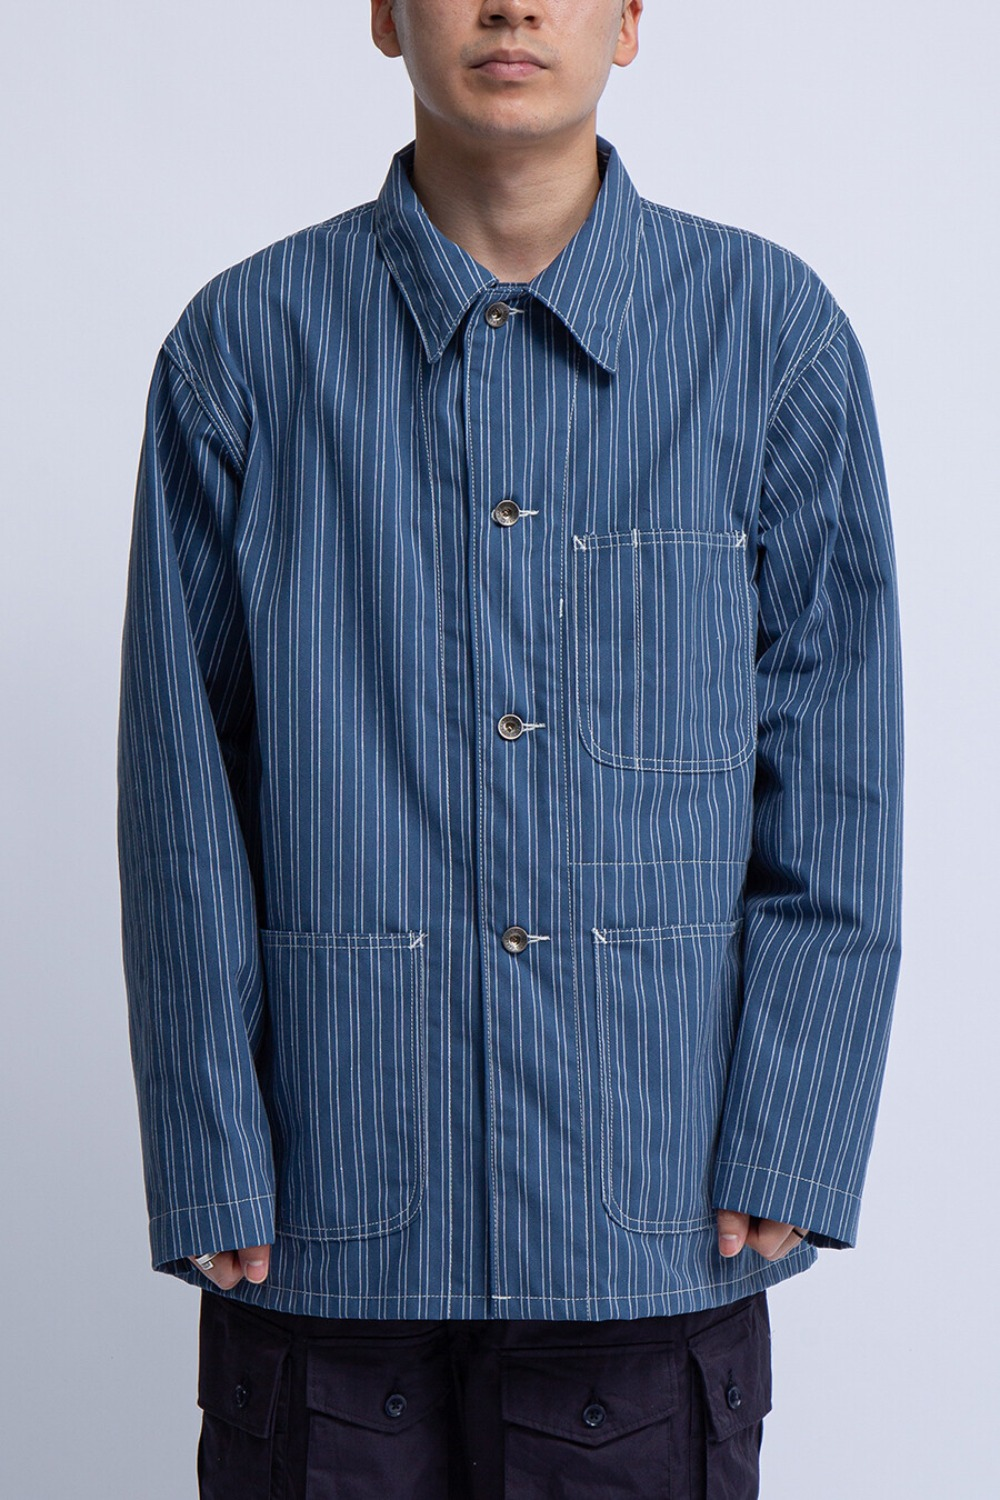 UTILITY JACKET BLUE WHITE WORKERS STRIPE